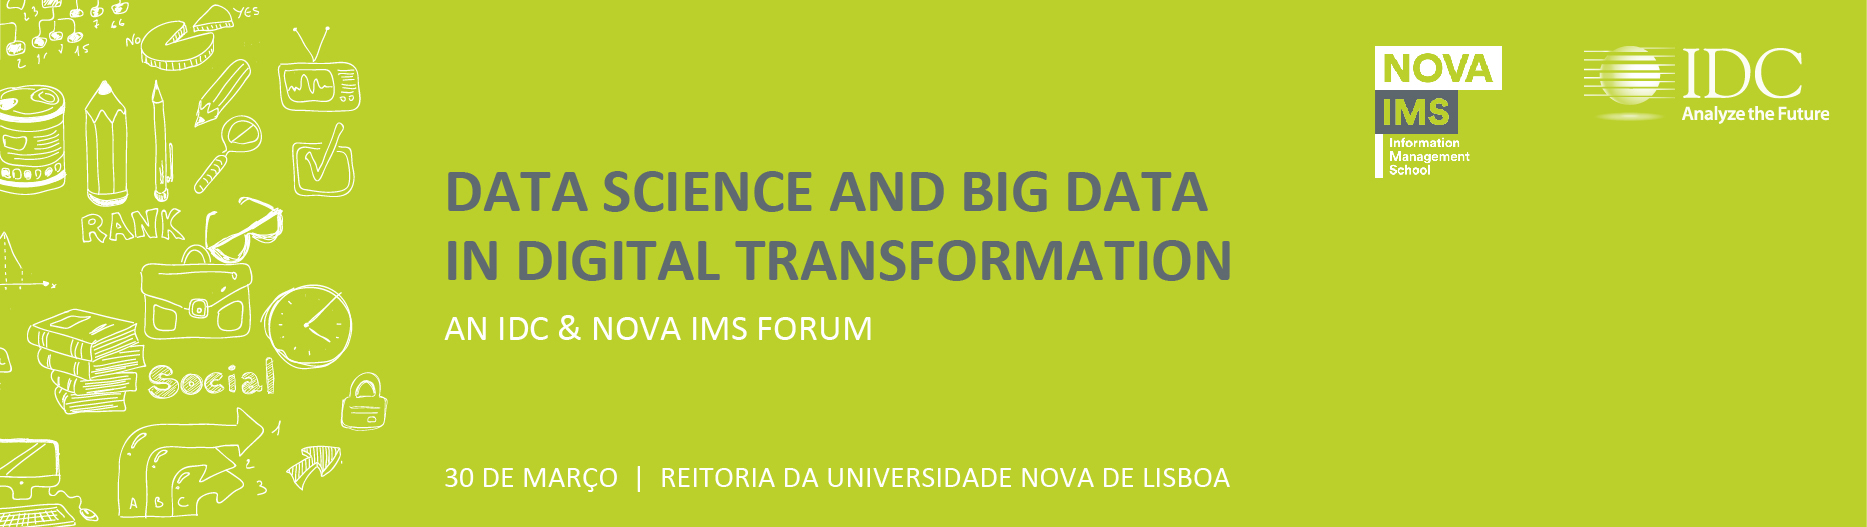 Data Science and Big Data in Digital Transformation | IDC & NOVA IMS Forum 2017